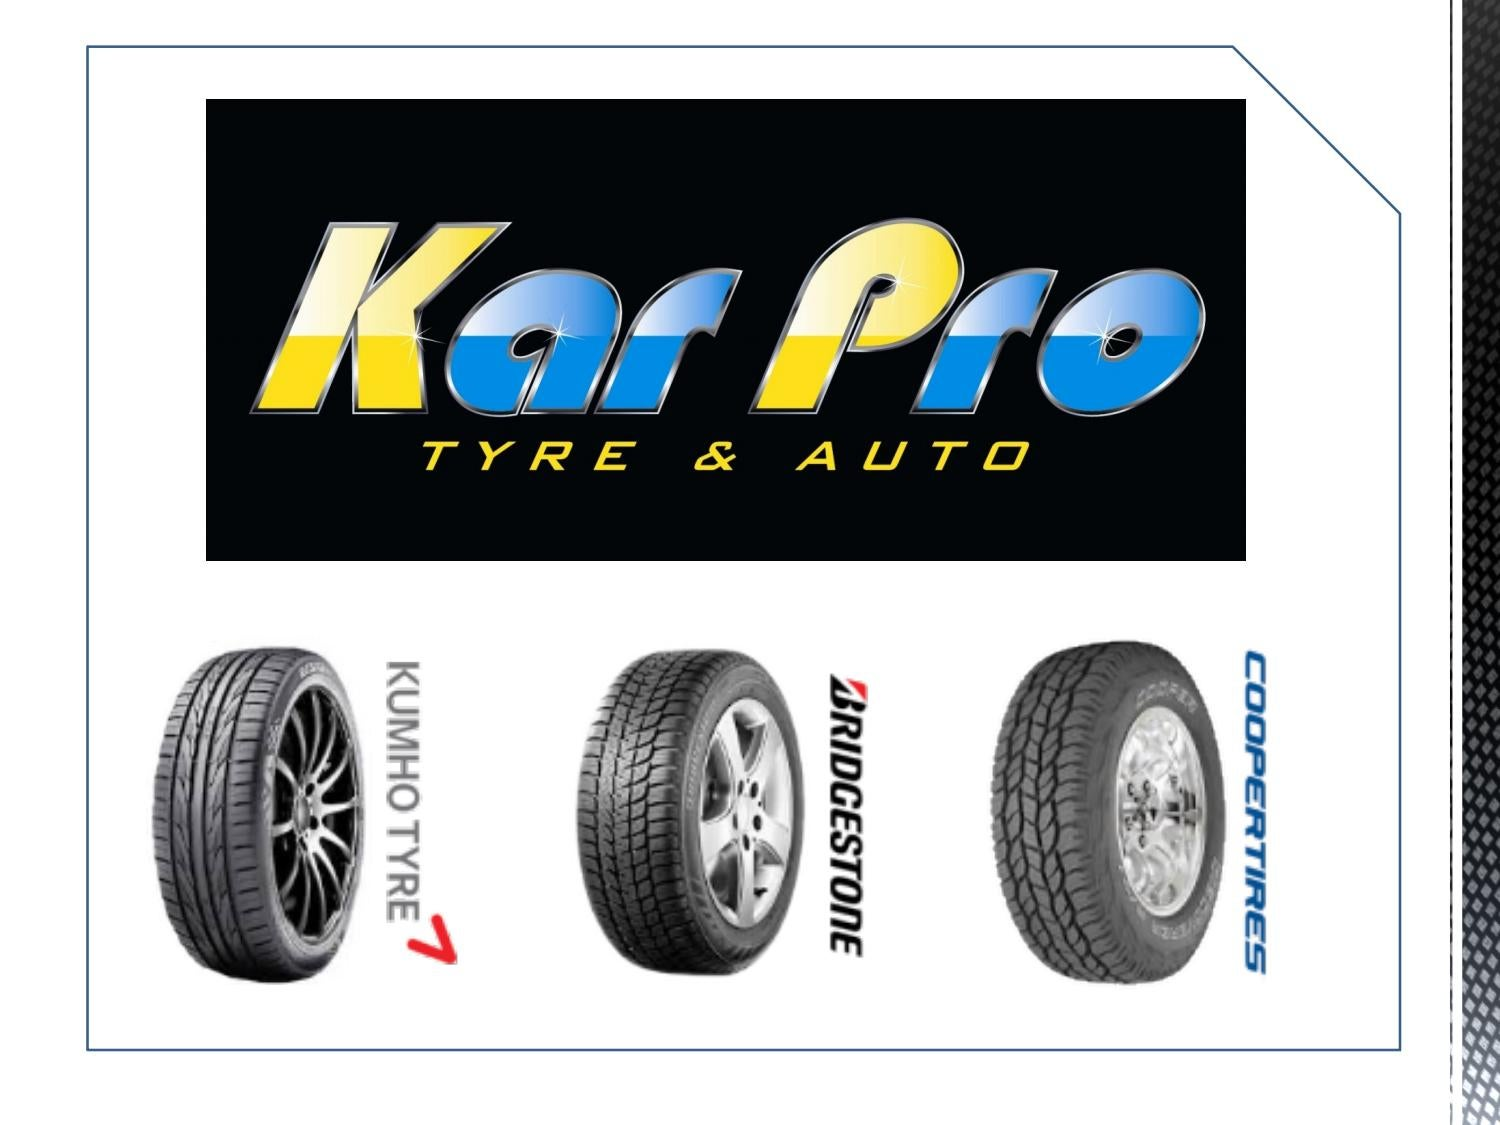 Pirelli Tyres and Bridgestone Tyres in Australia